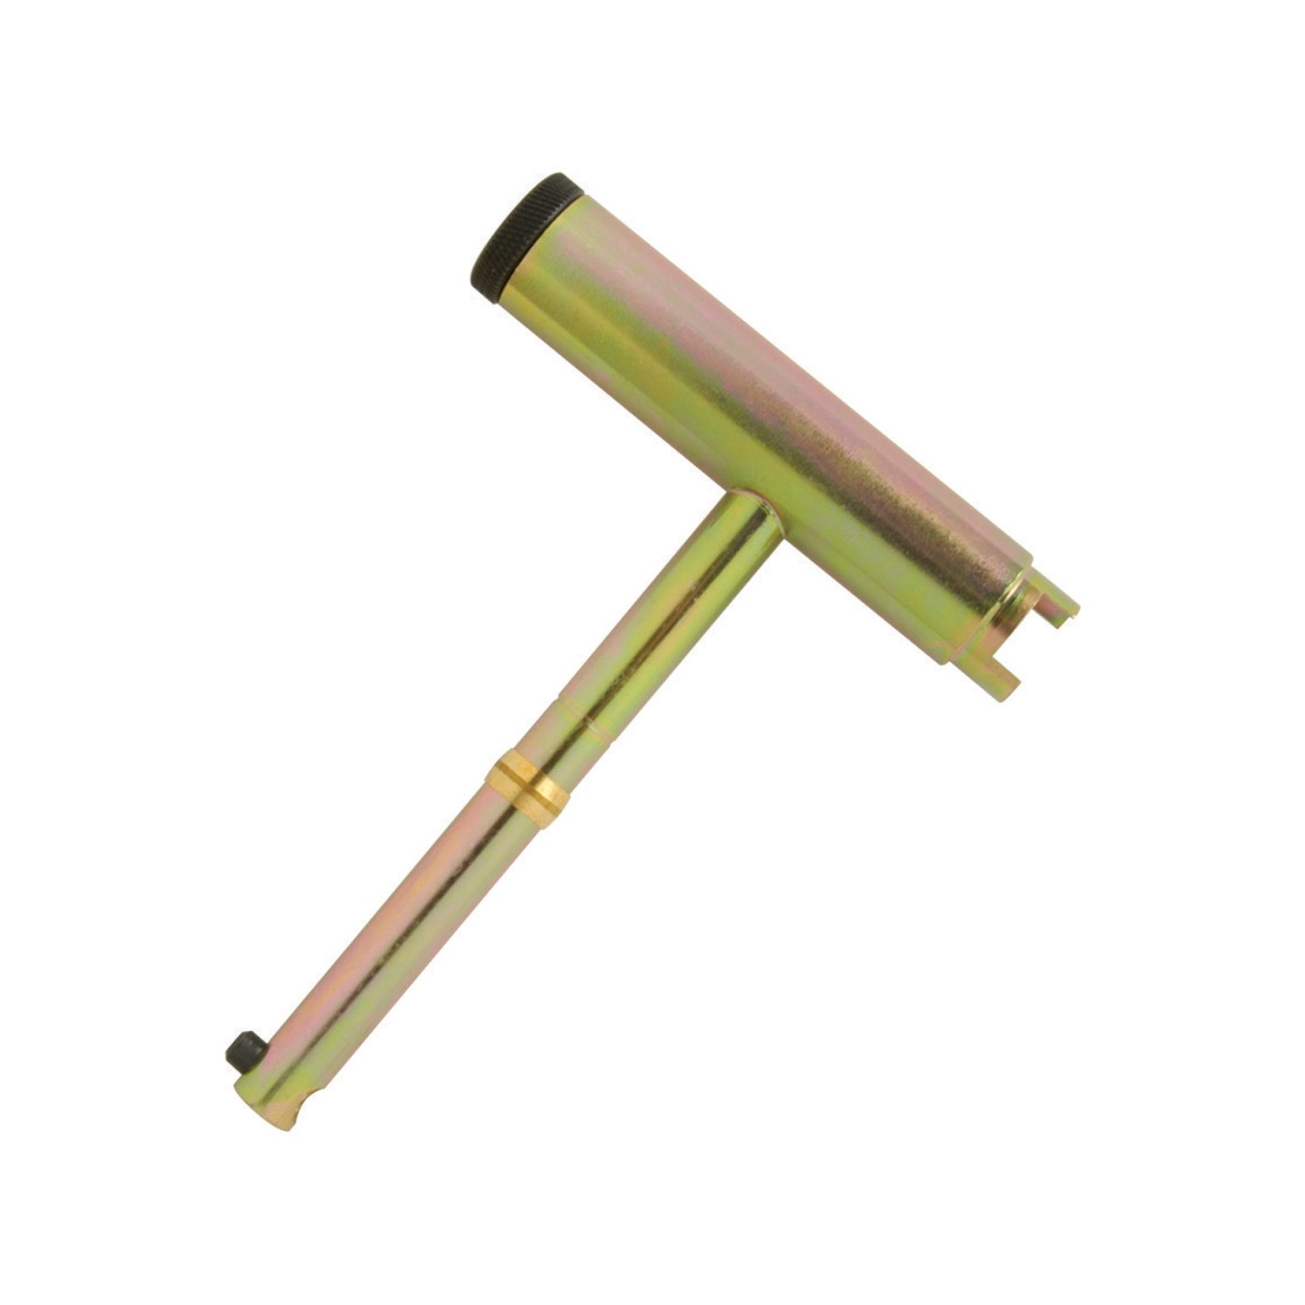 ace stem and cartridge puller for moen plumbing tools ace hardware in sizing 1305 x 1305